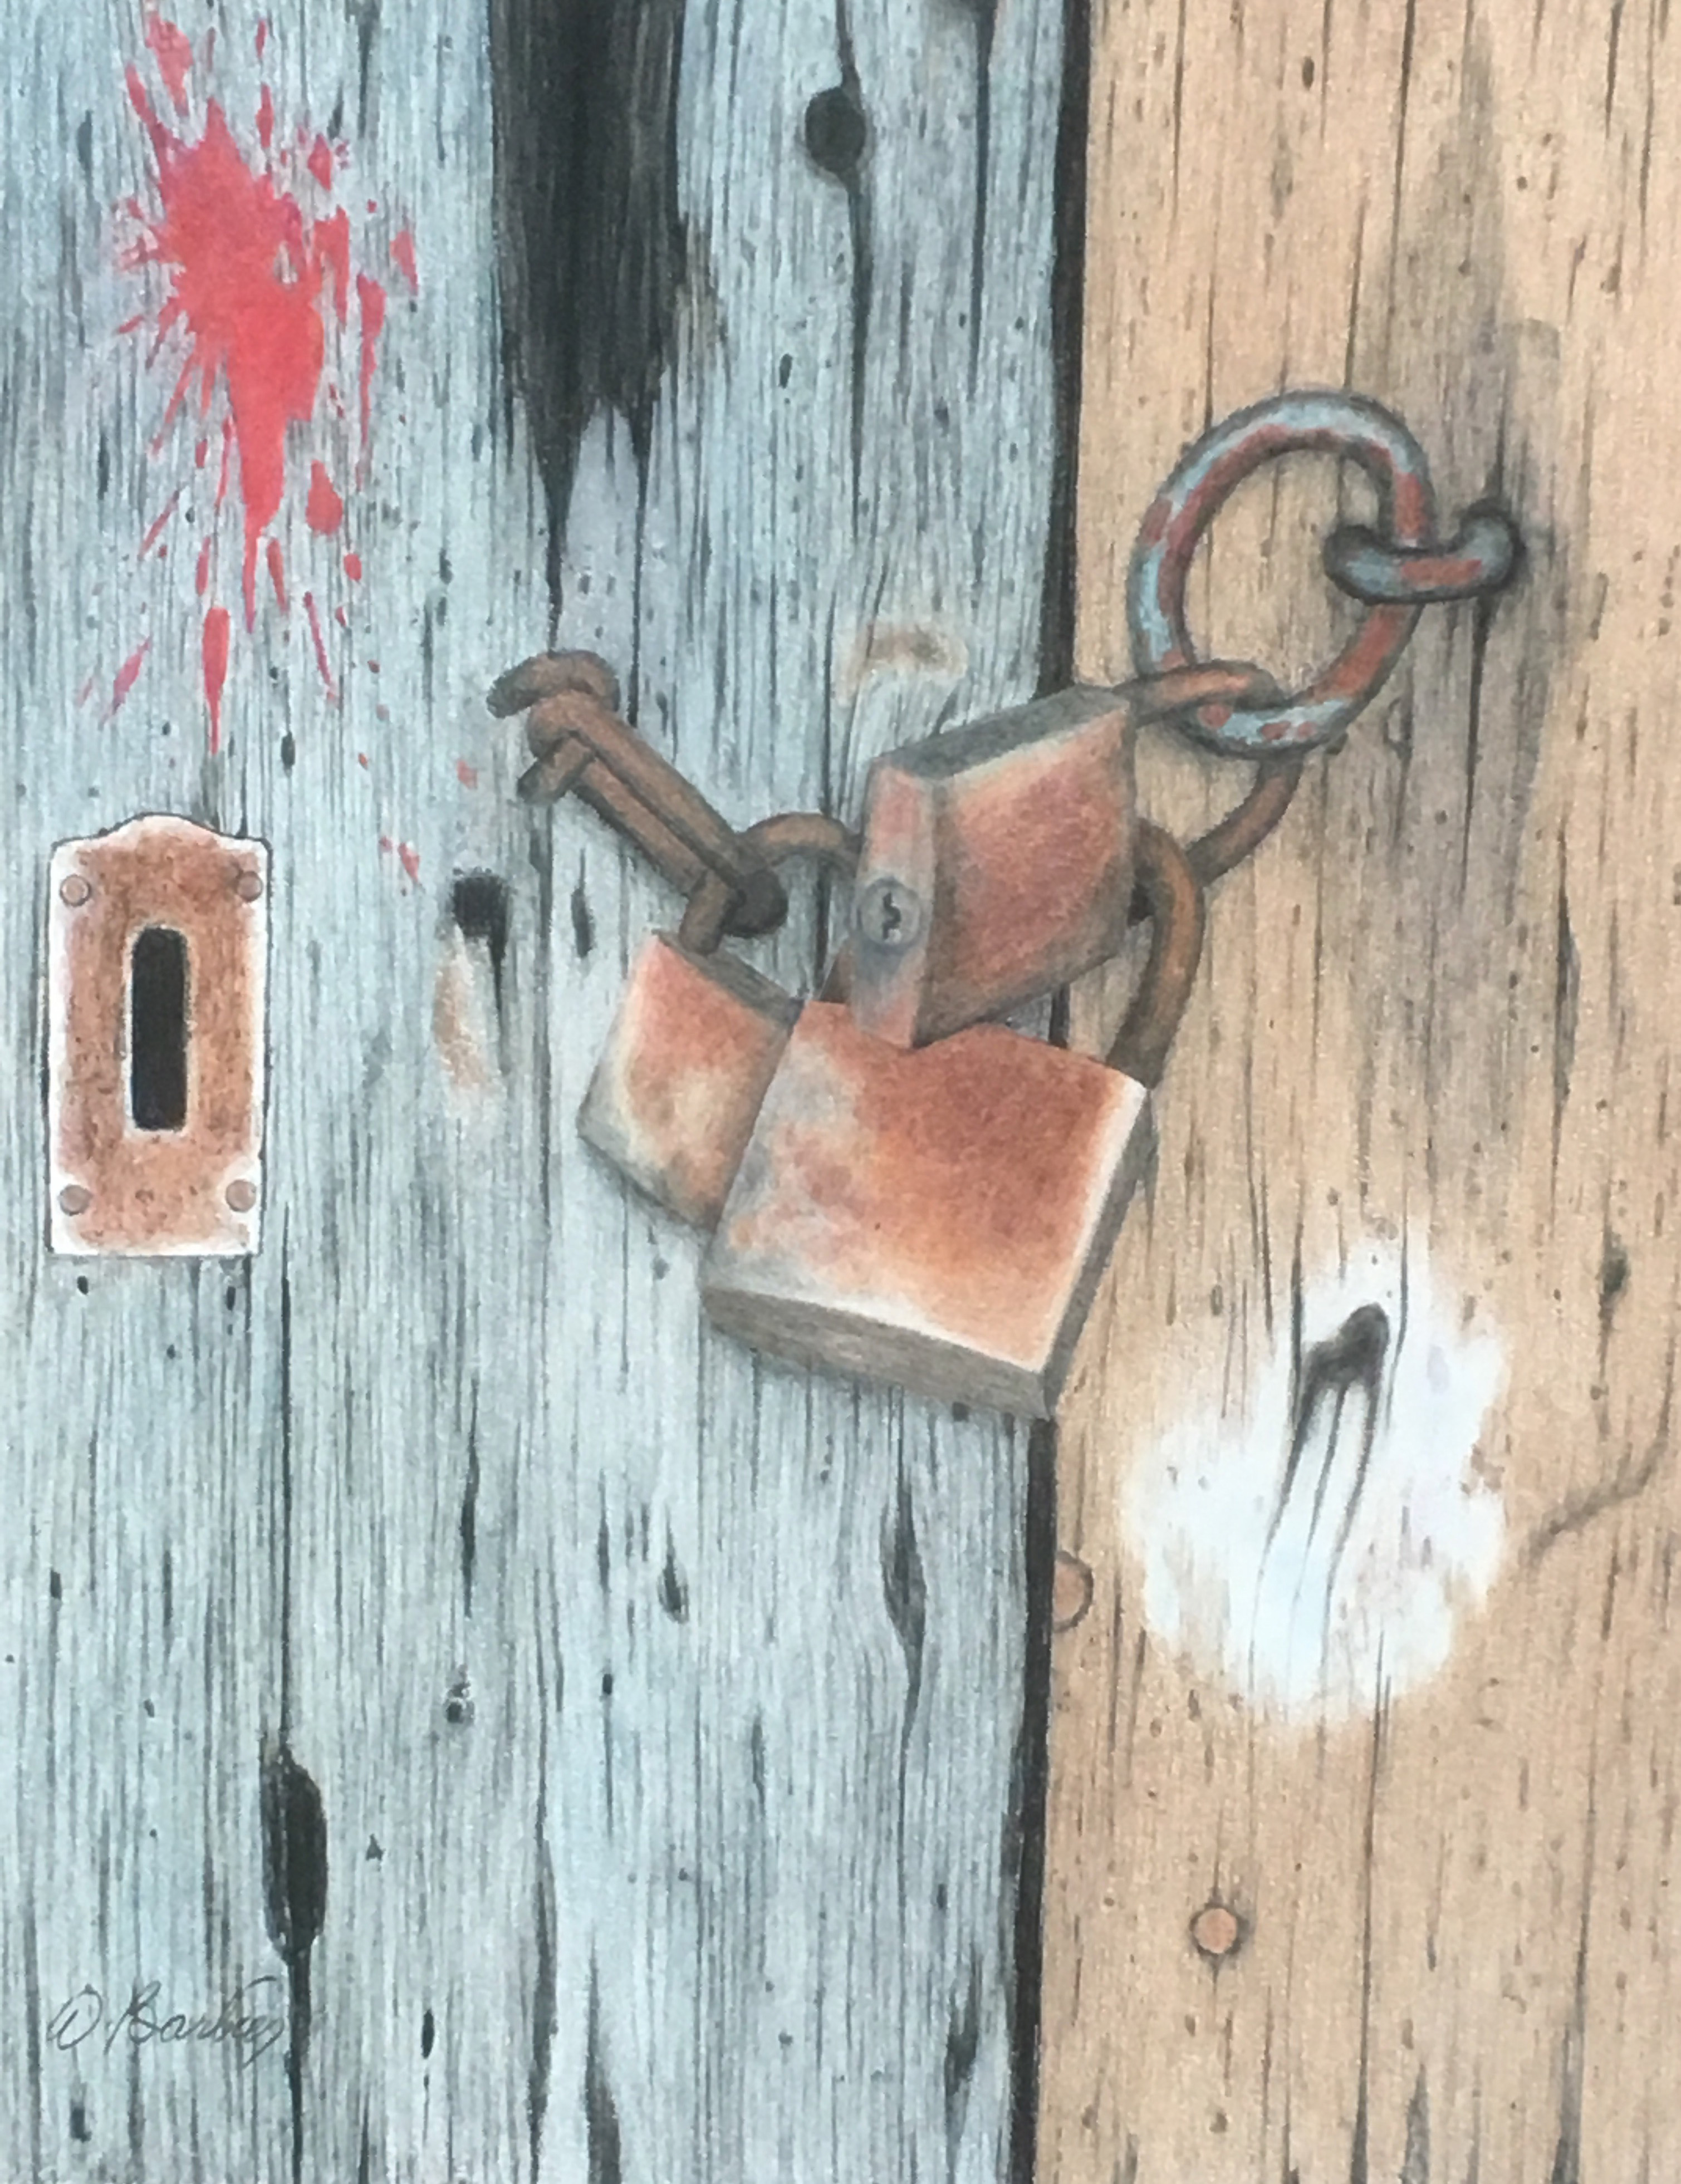 Three rusty padlock